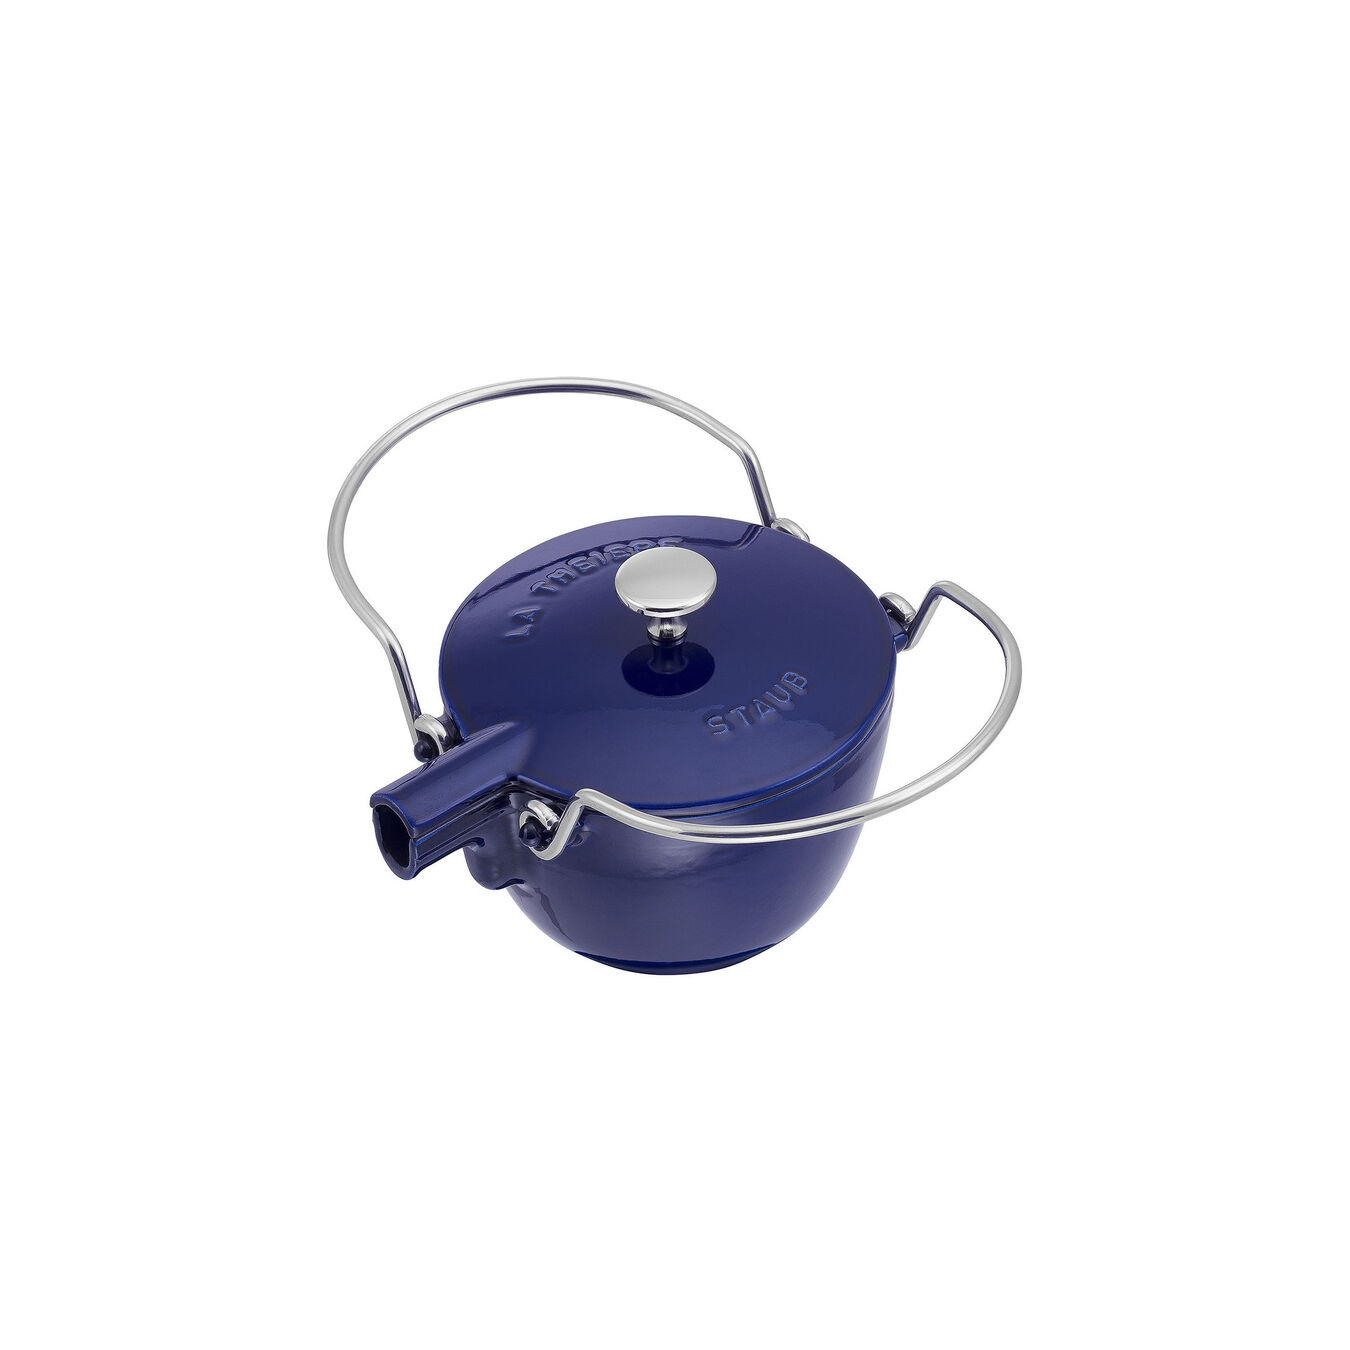 1,25 l Cast iron Théière, Dark-Blue,,large 2